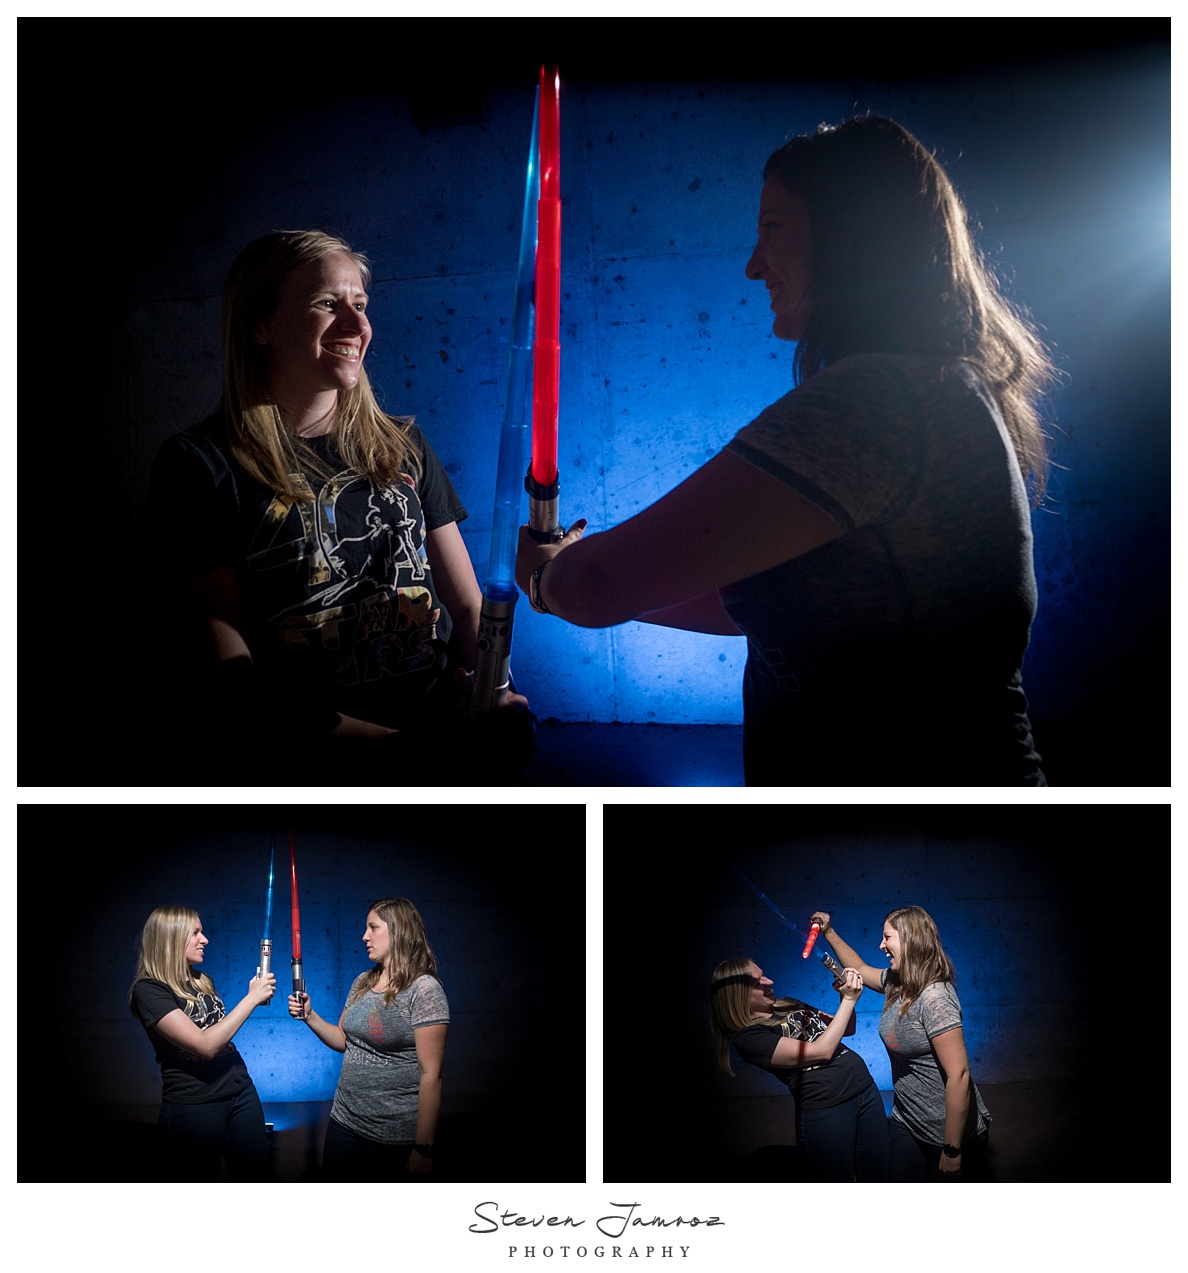 starwars-themed-engegement-photos-raleigh-nc-photographer-0001.jpg